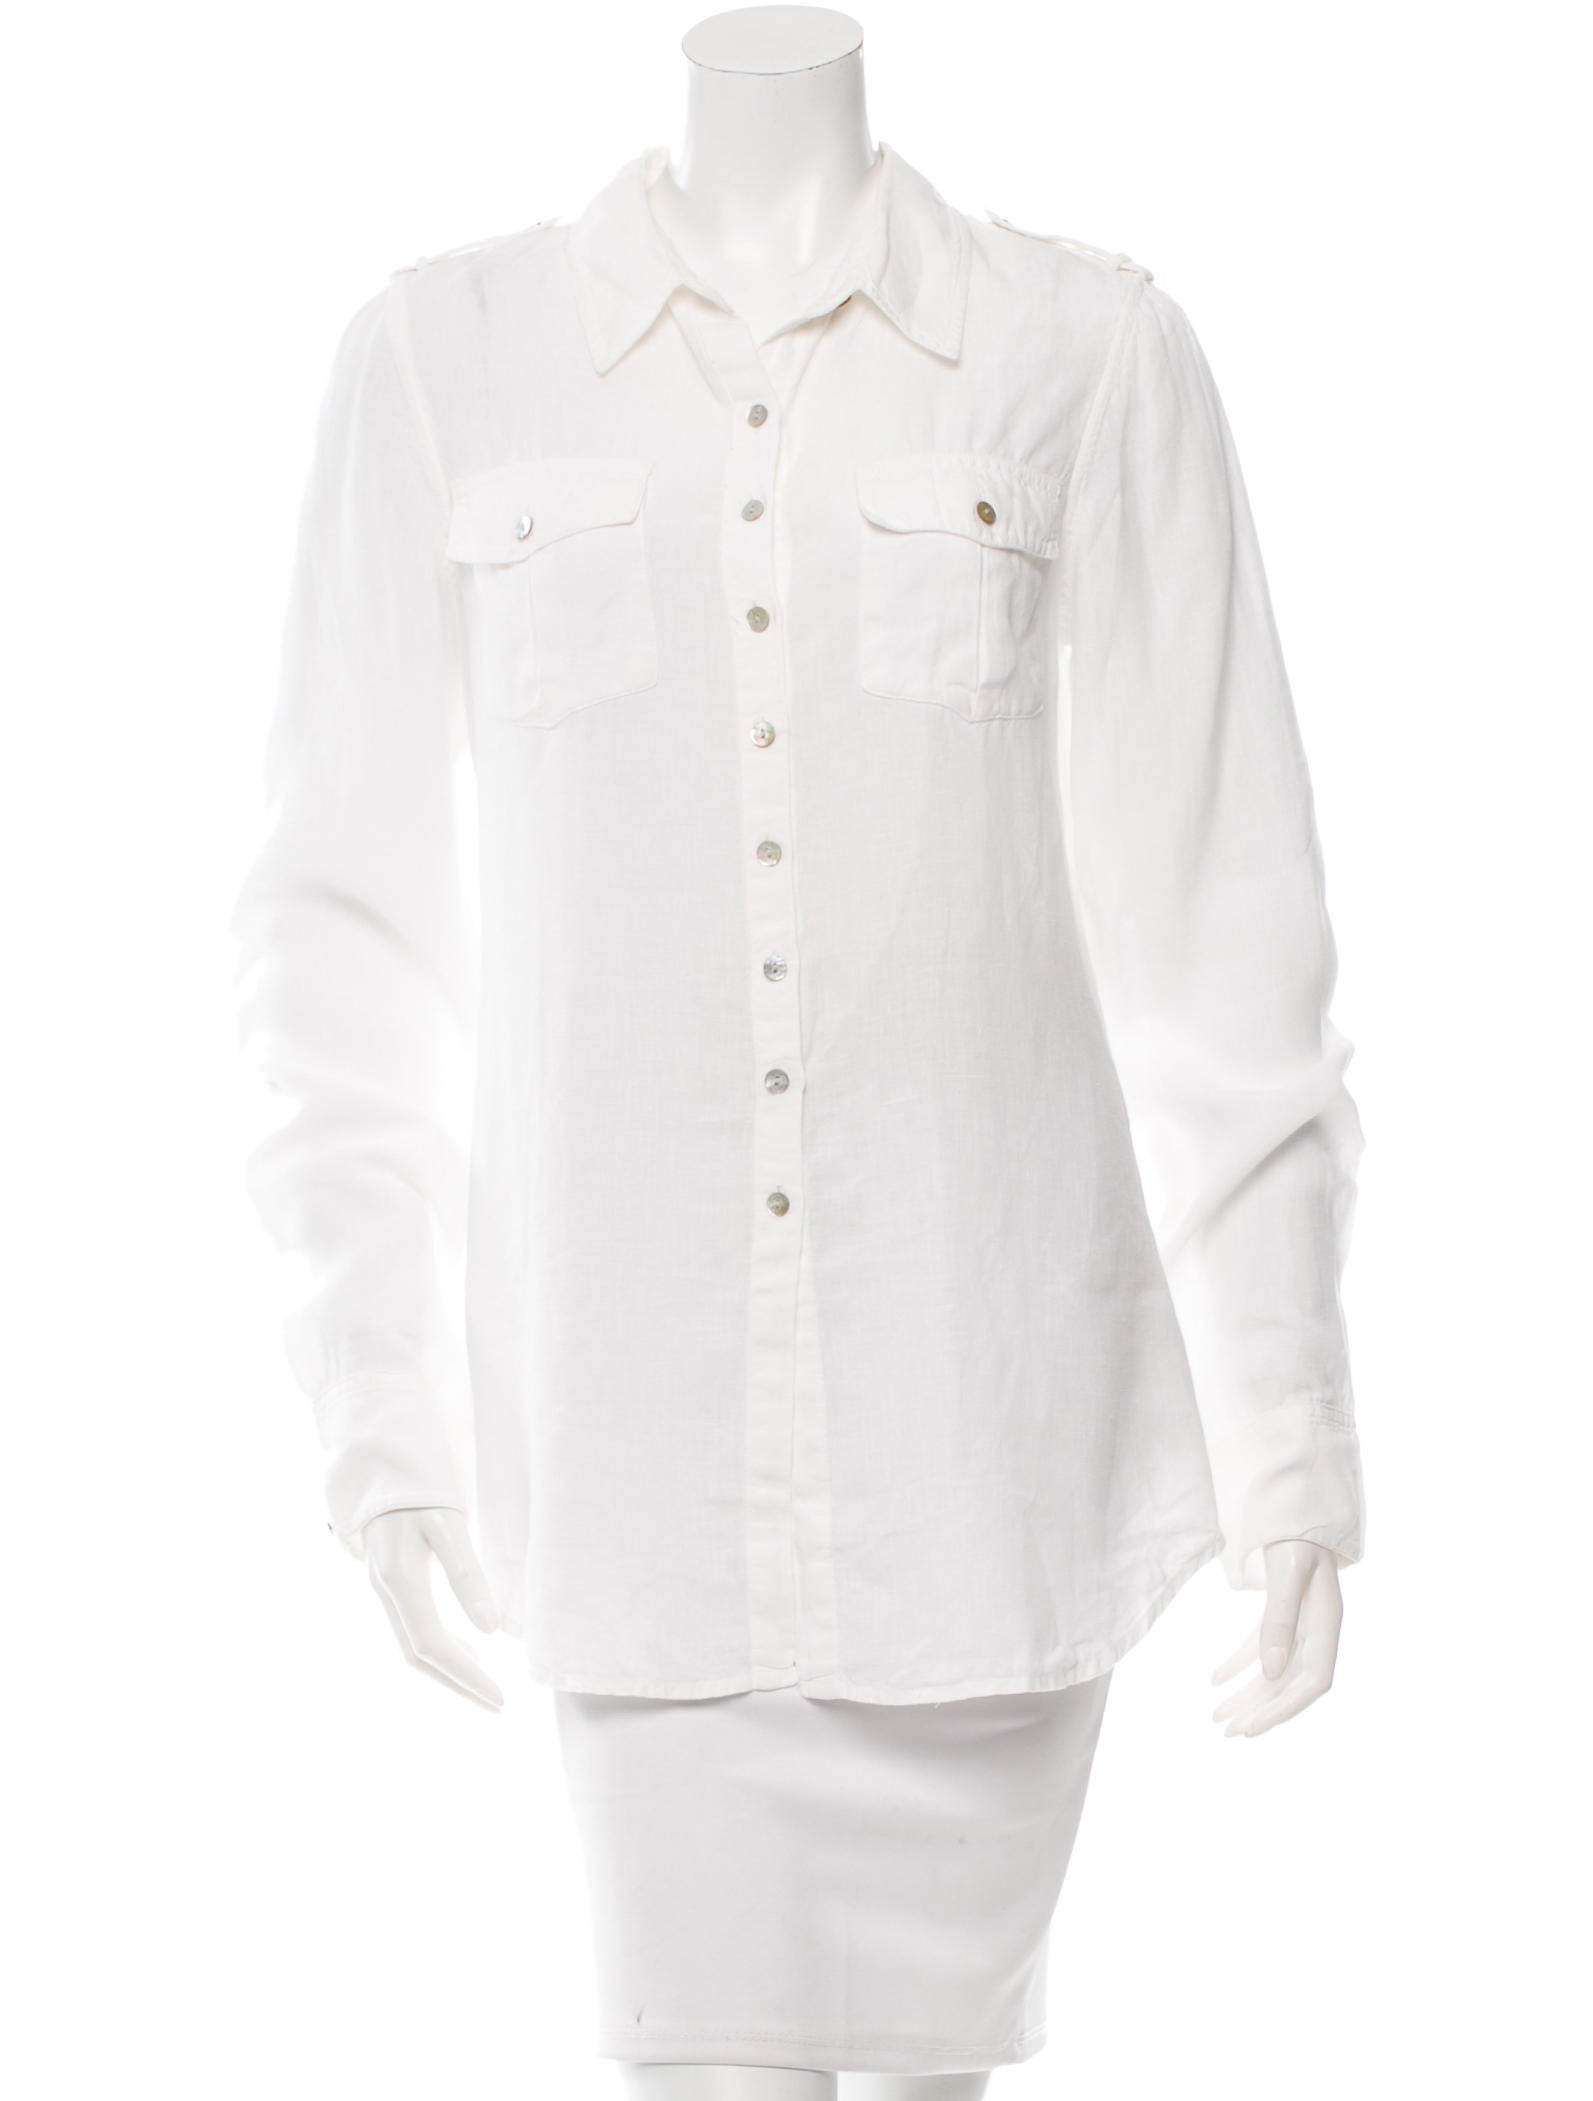 Calypso linen button up top clothing wc820130 the for Linen button up shirt womens